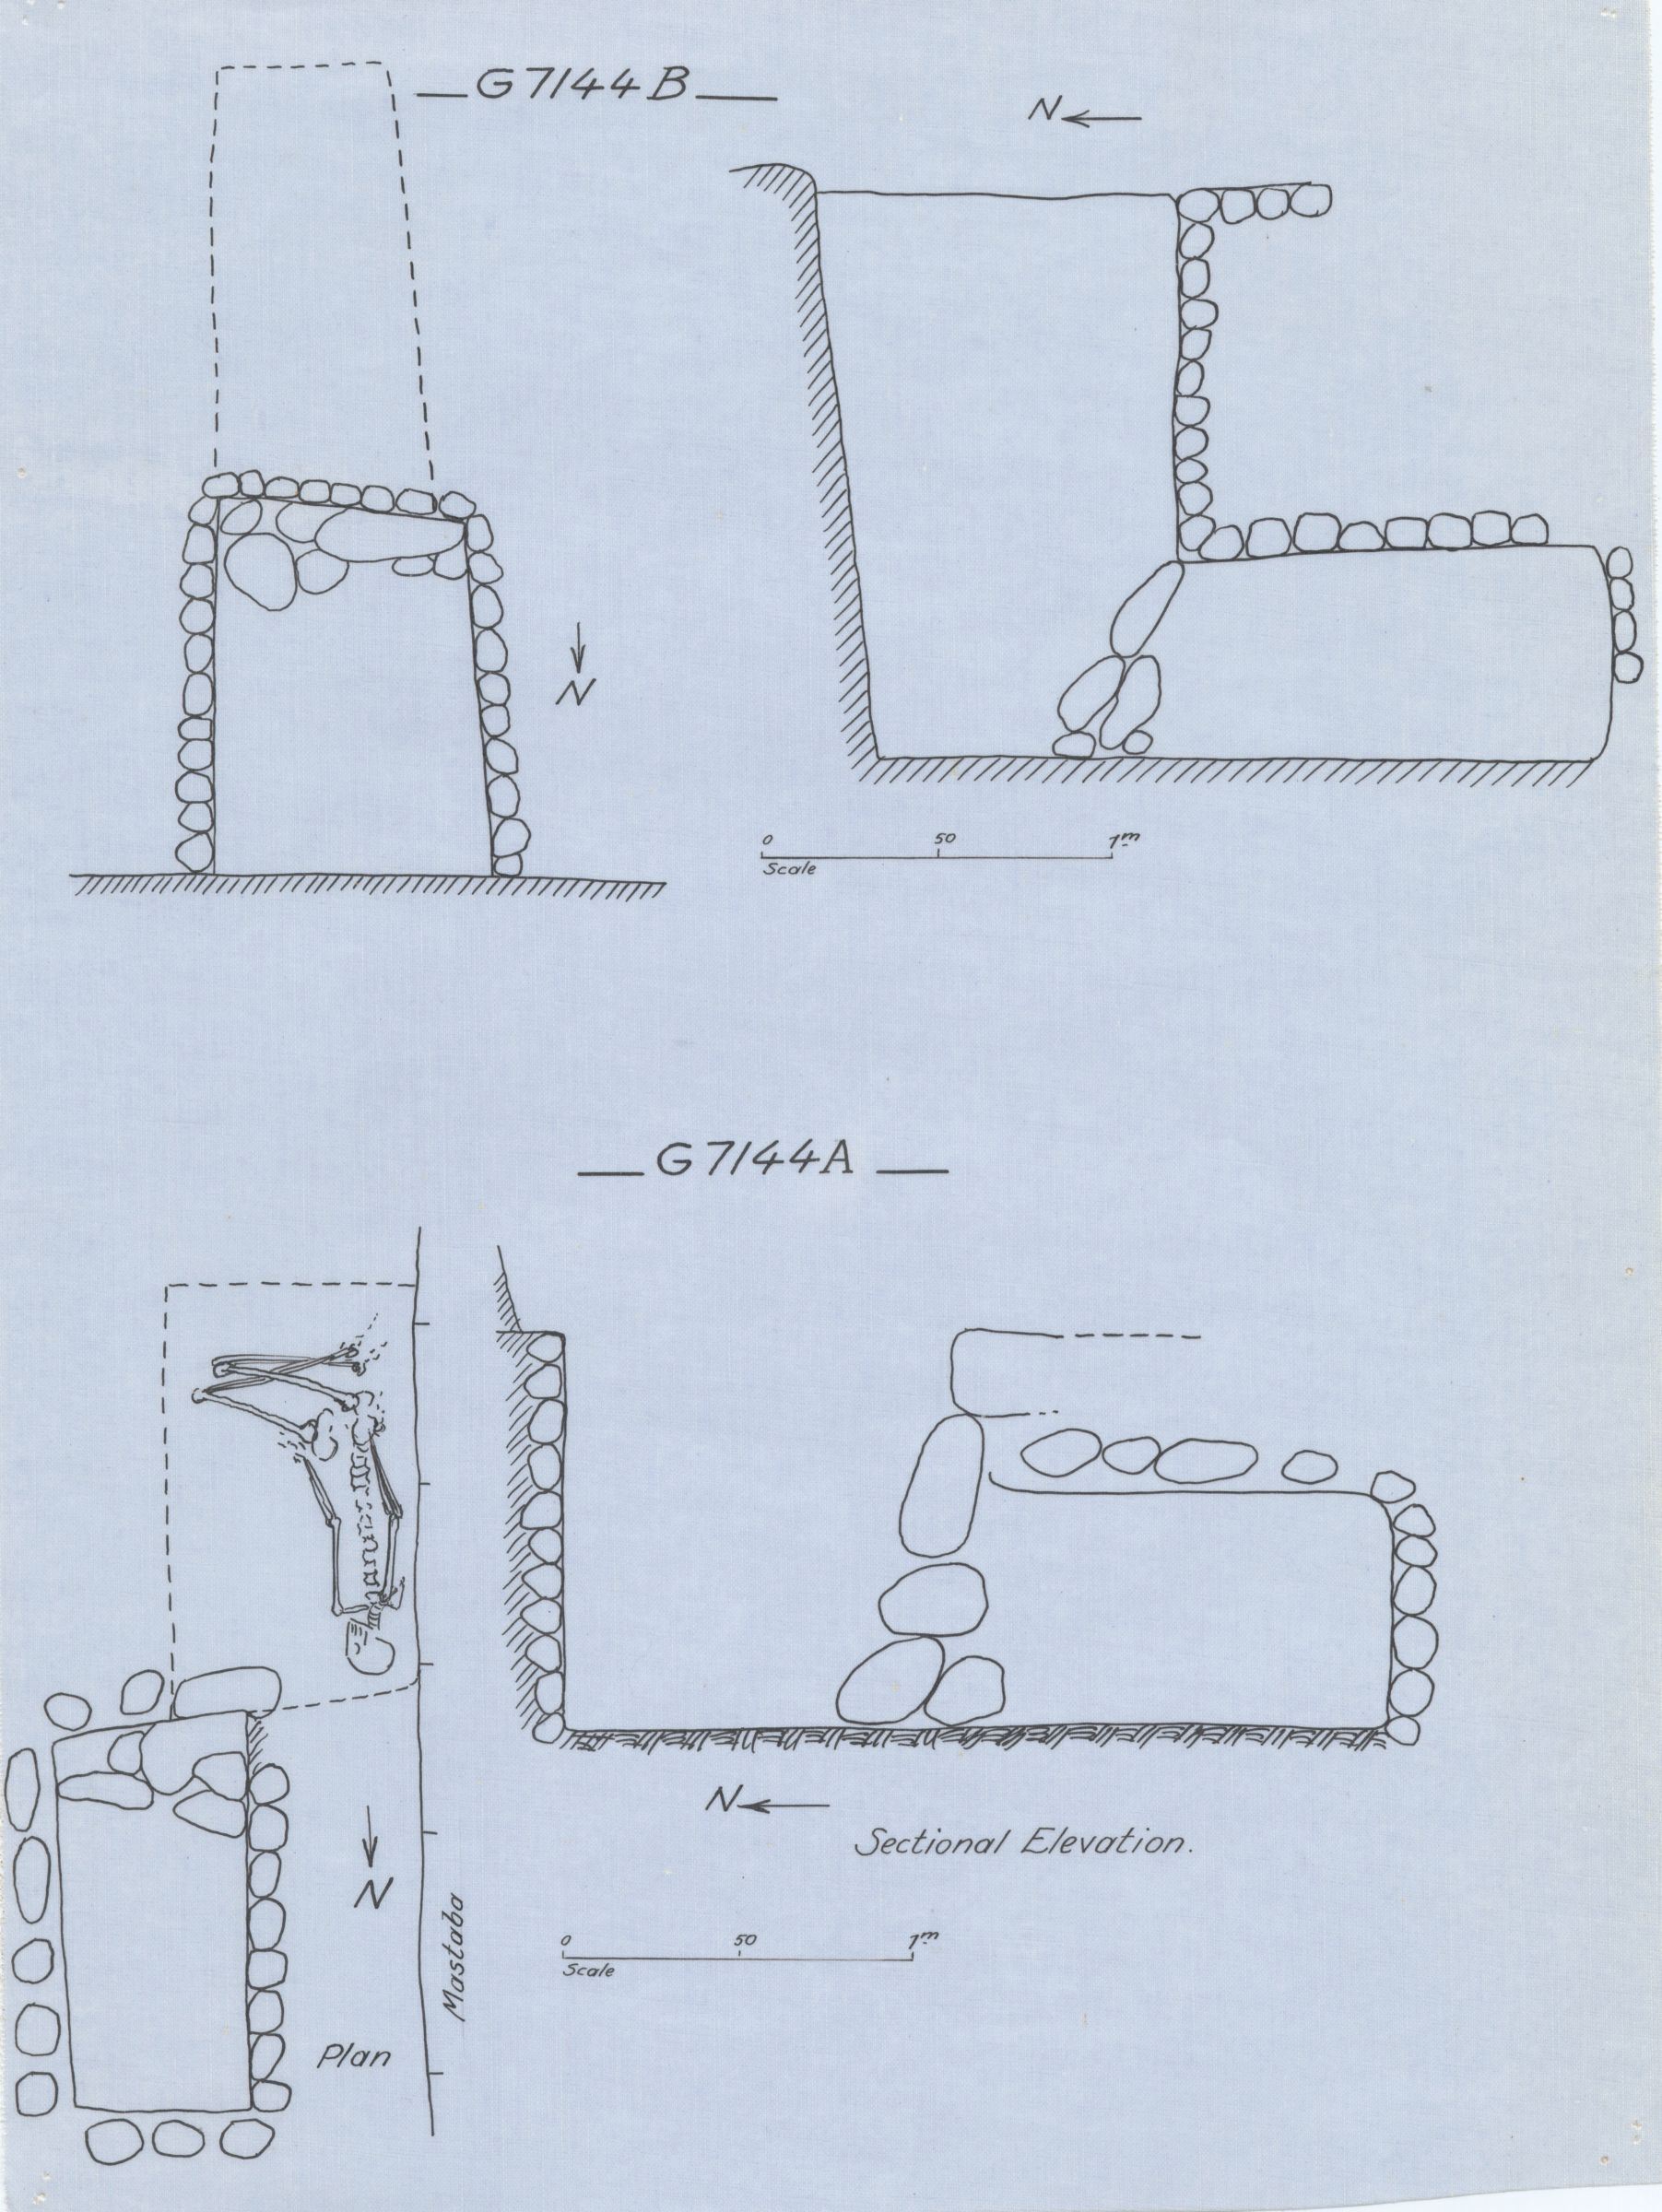 Maps and plans: G 7144, Shaft A and B